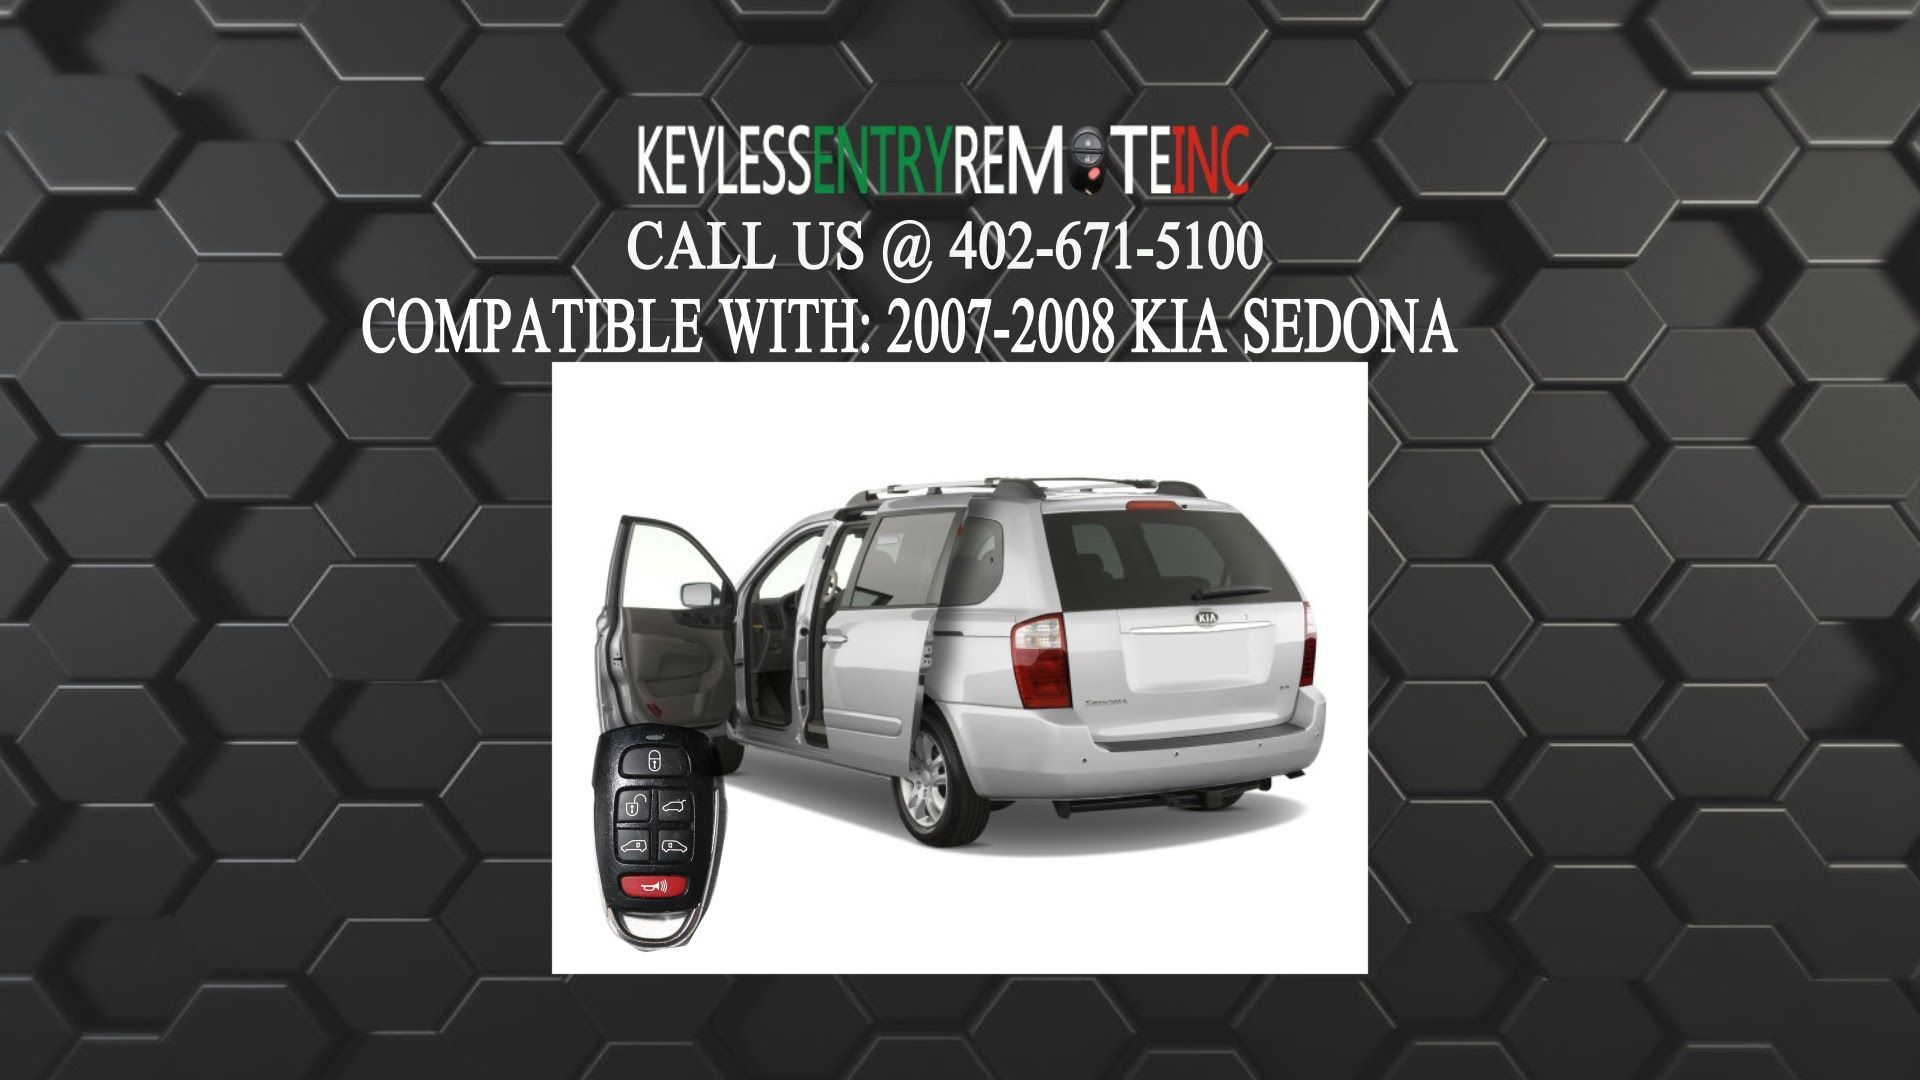 How To Replace Jeep Liberty 2008 2011 Key Fob Battery Jeep Liberty Jeep Fobs